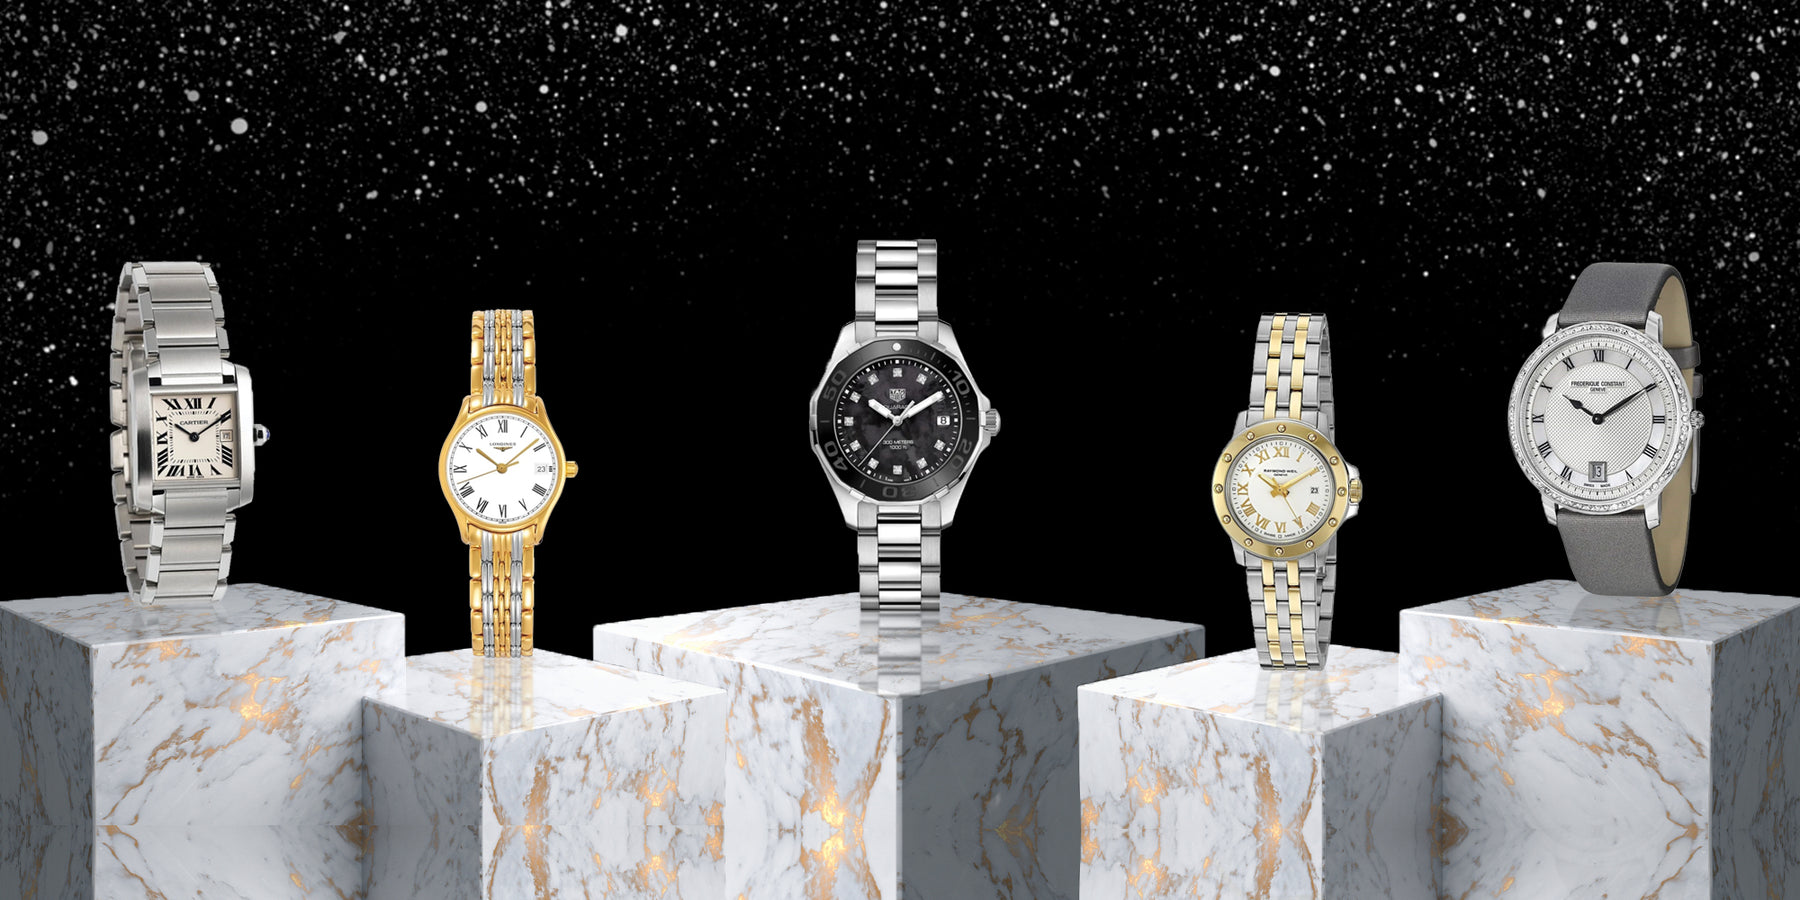 Top Five Women's Luxury Watches for the Holidays